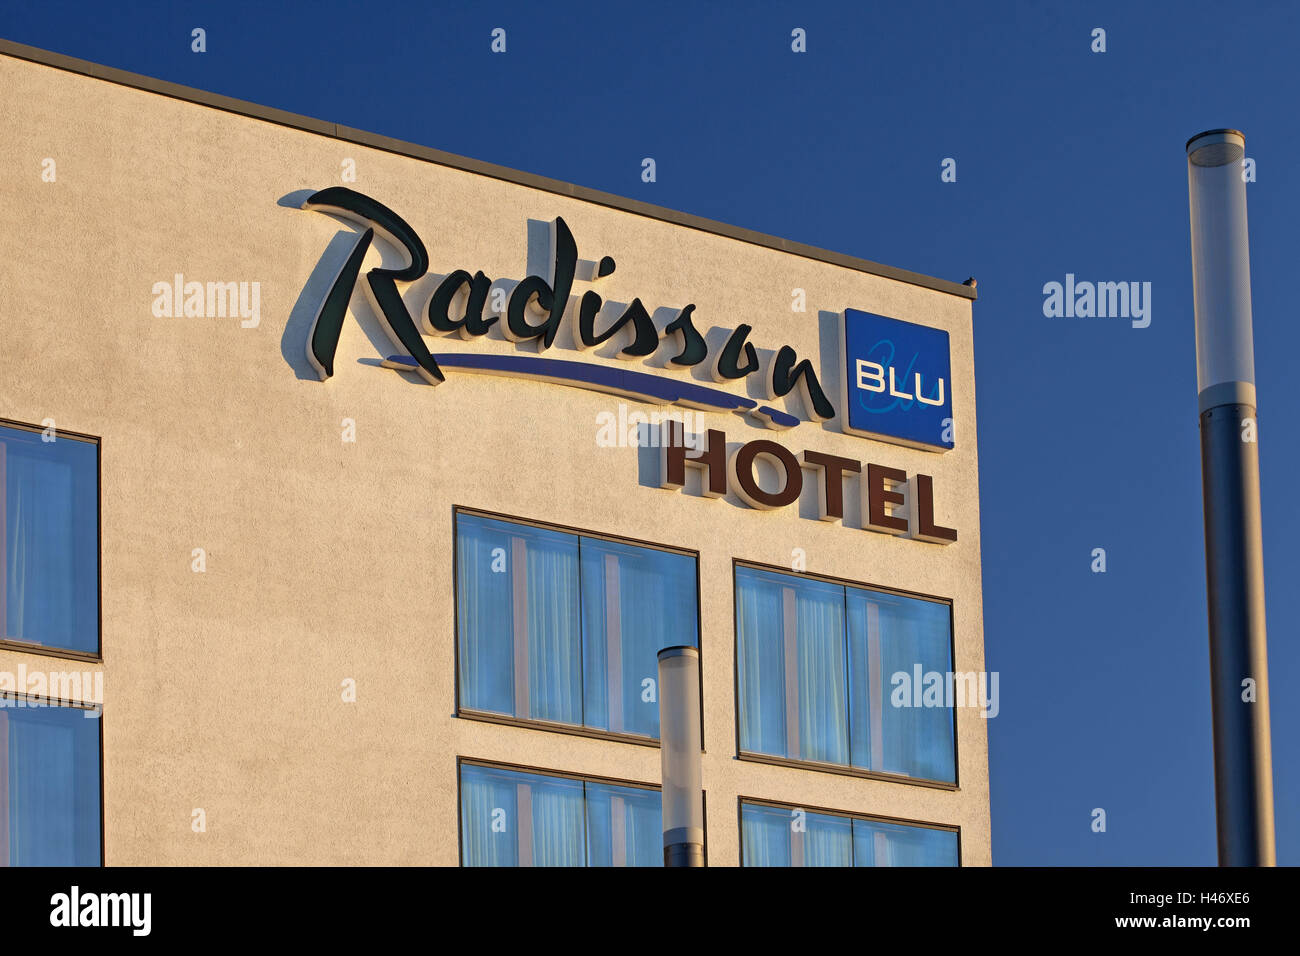 Germany, Lower Saxony, Hannover, exhibition site, Radisson